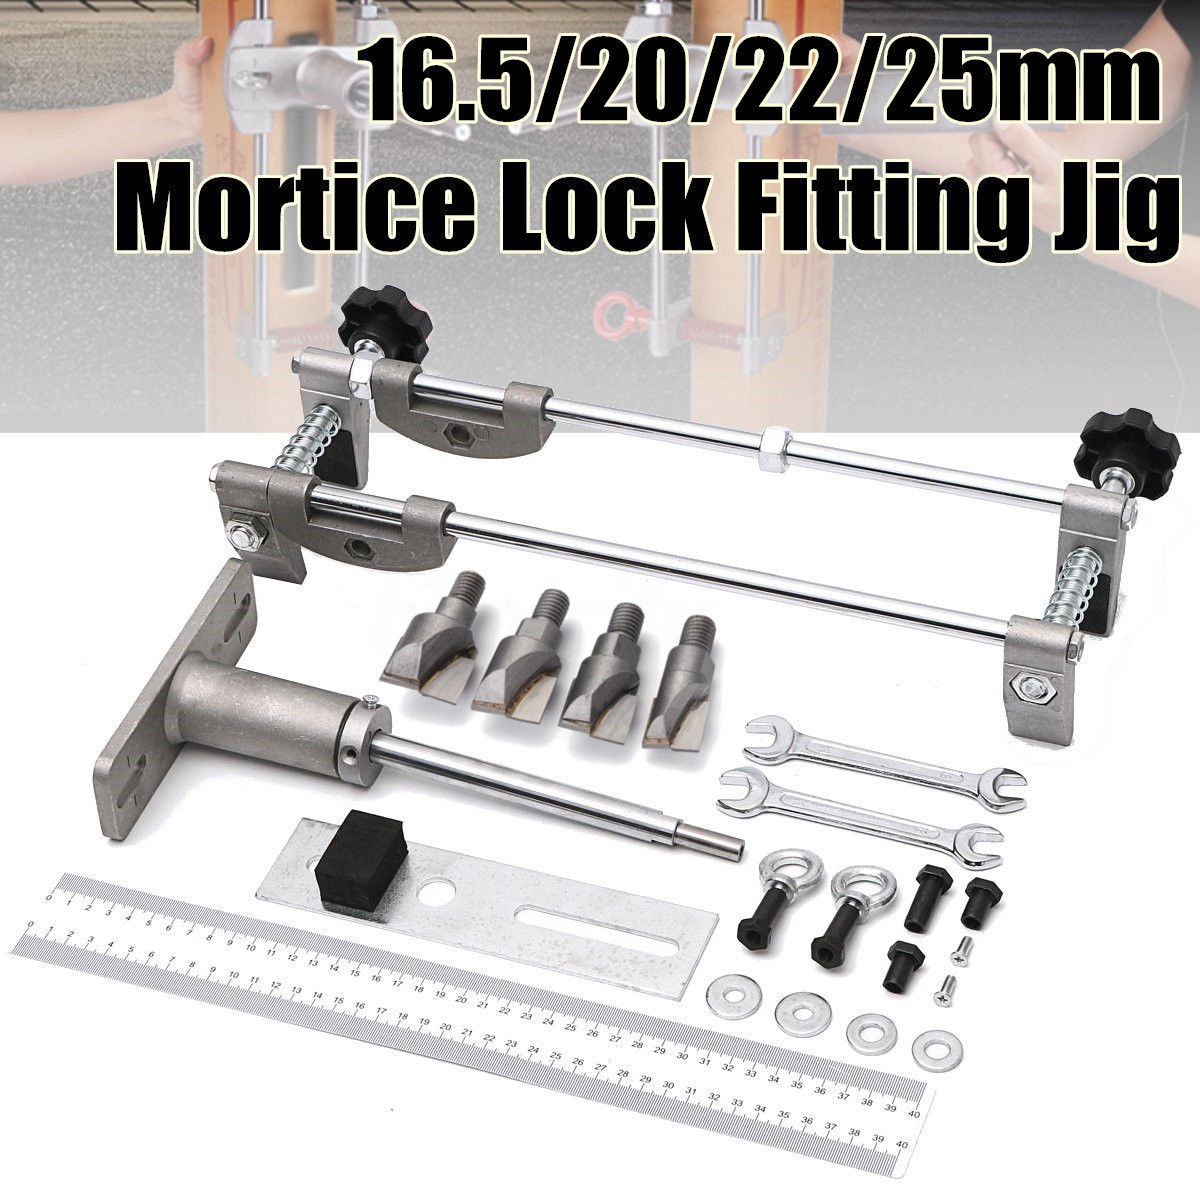 16 51 Aud 90mm Mortice Door Lock Fitting Jig Kit Carbide Tip Wood Metal Hole Cutter Tool Ebay Home Garden Wood Cutter Door Fittings Mortice Lock